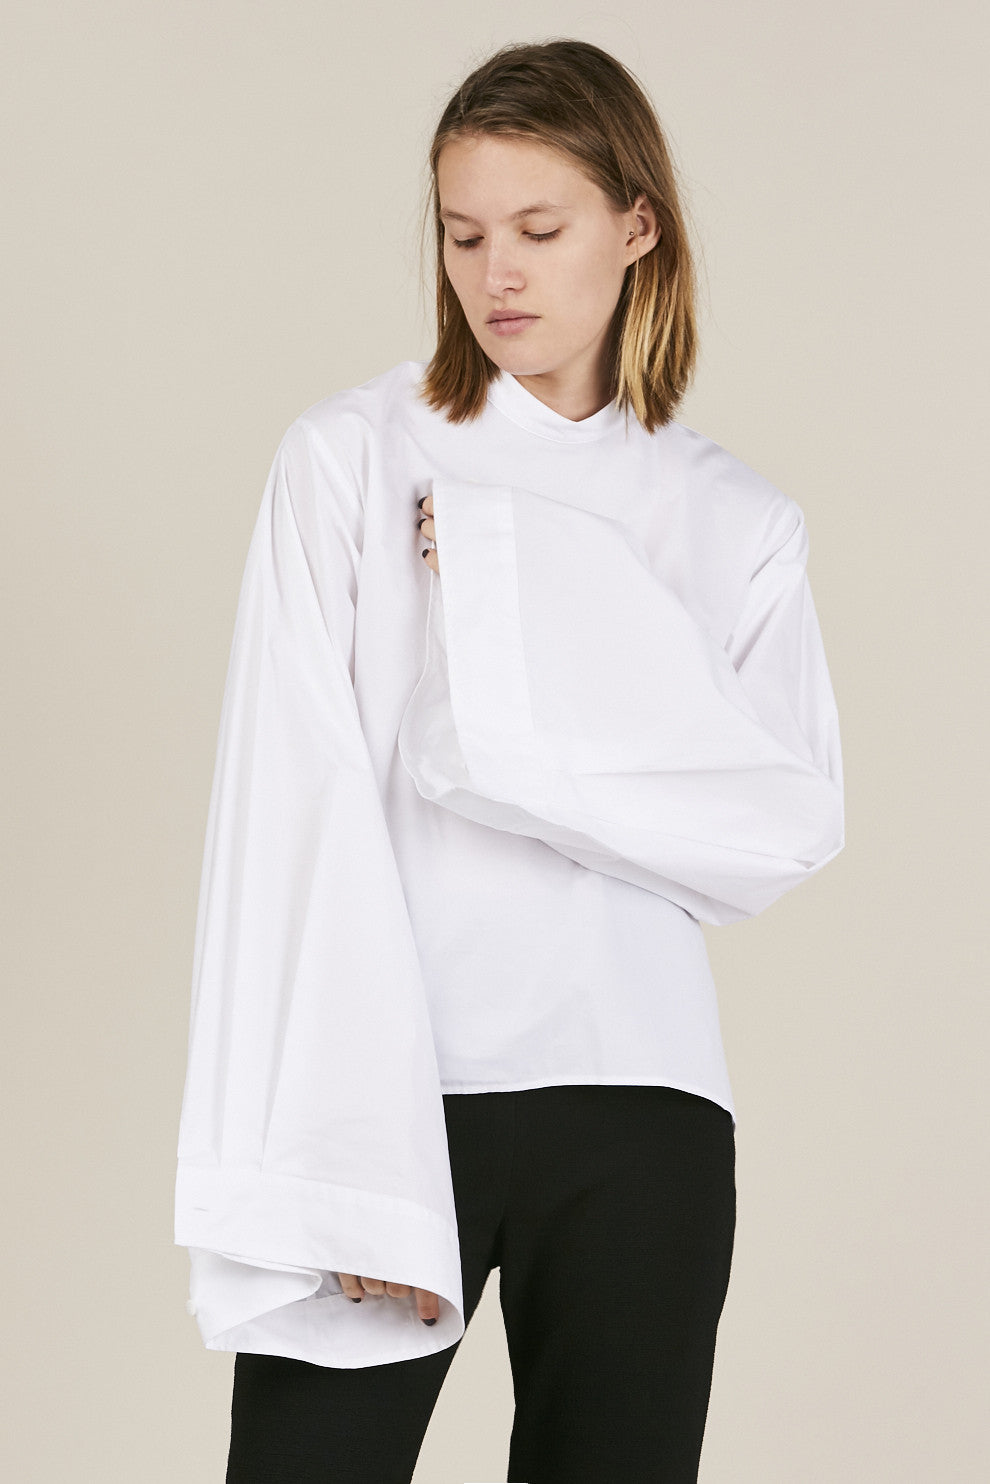 Large sleeve blouse, White - MM6 by Maison Martin Margiela